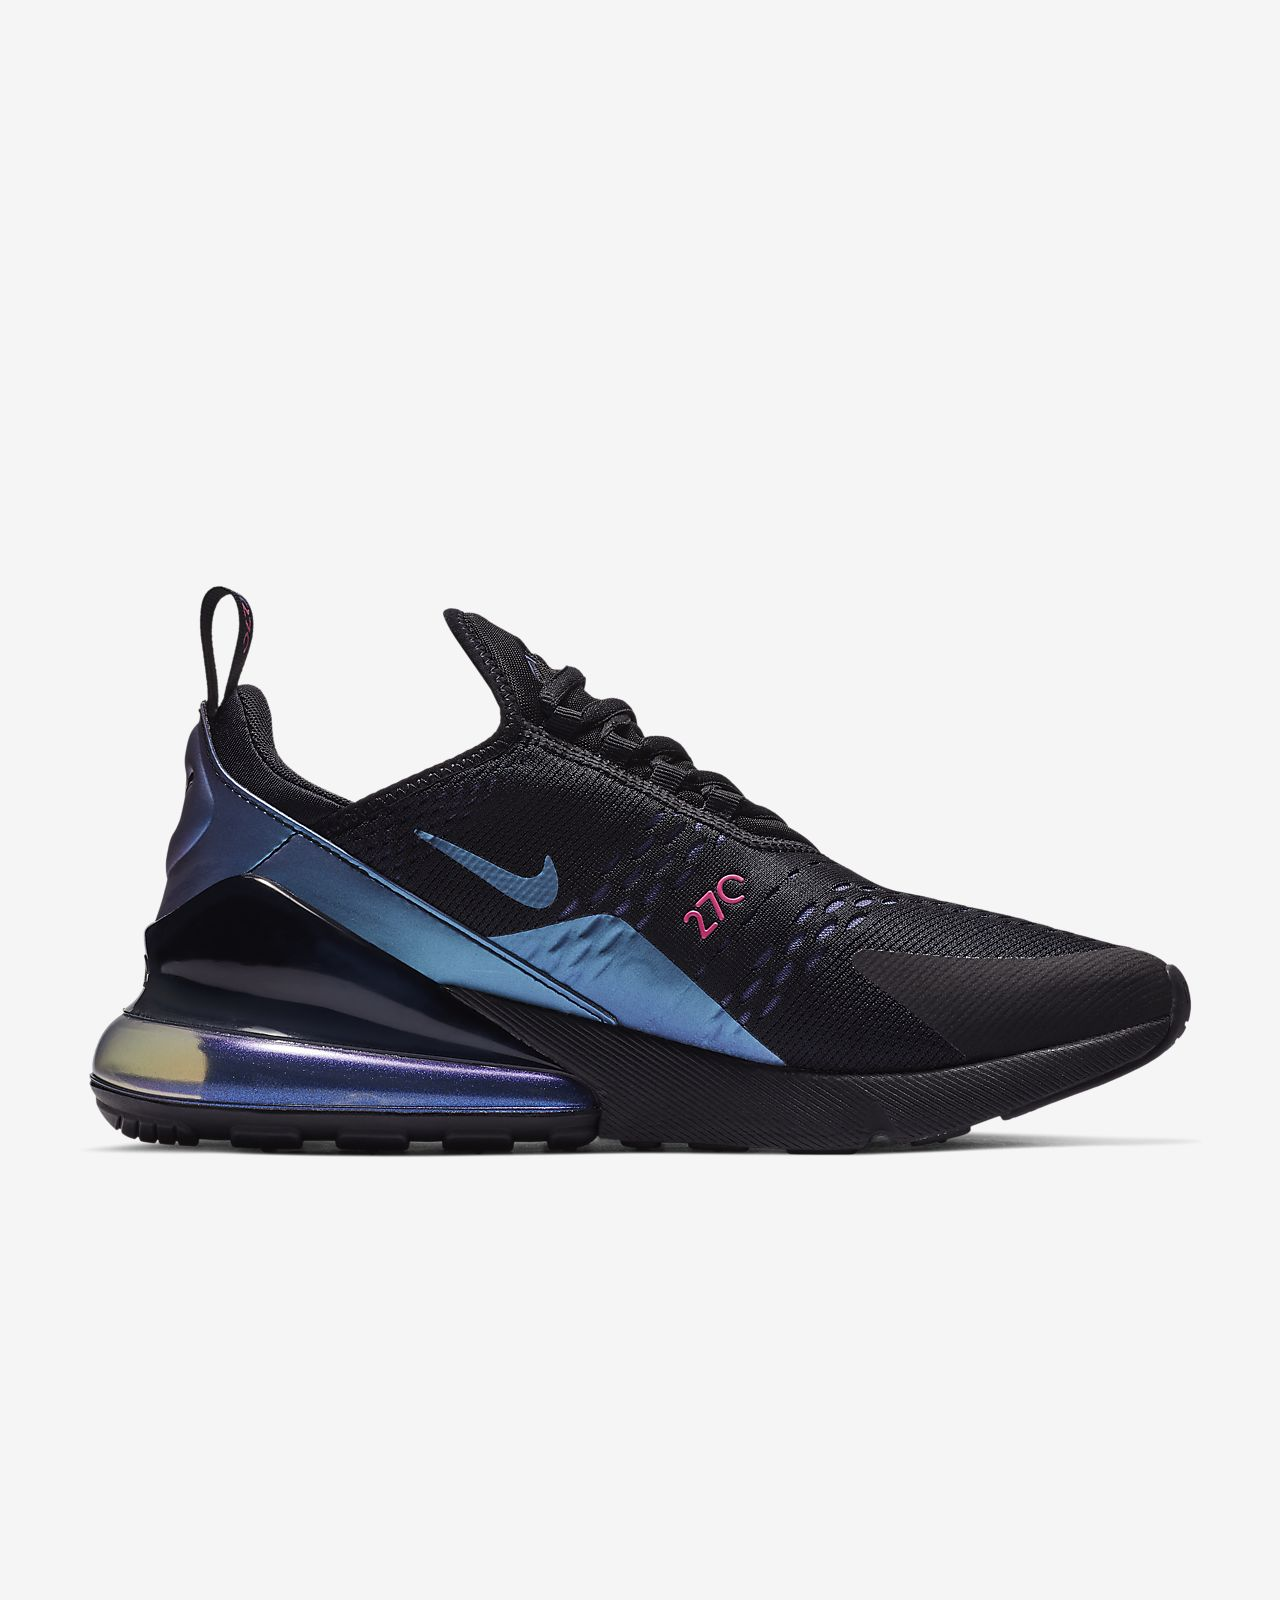 reputable site aa5f1 8b43b ... Nike Air Max 270 Mens Shoe